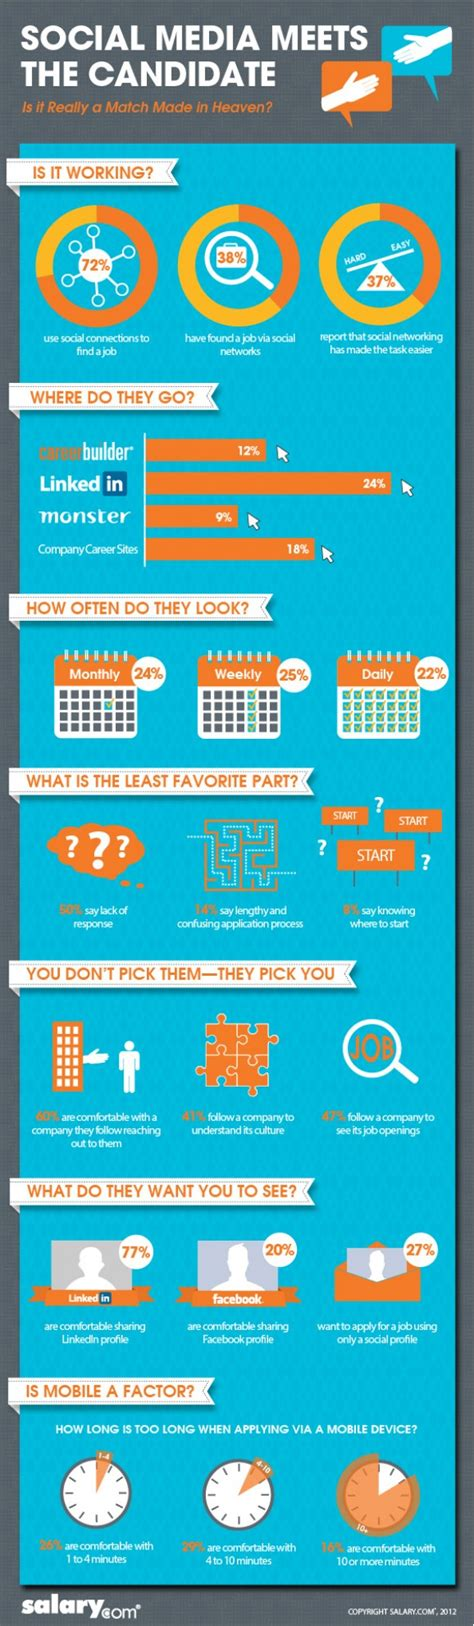 Job Seekers and Social Media #Infographic - Spark Hire